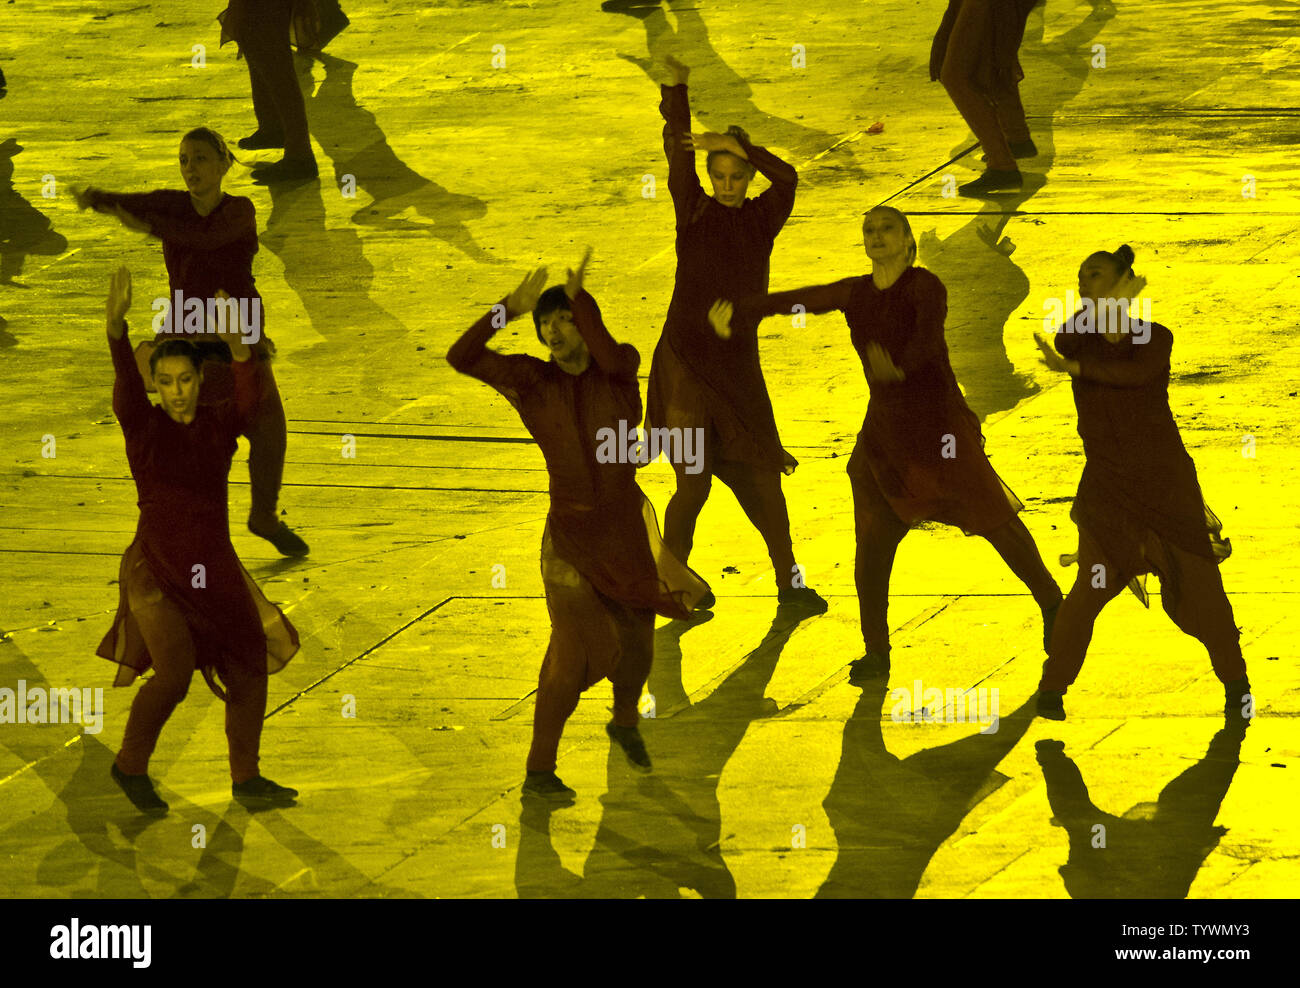 Dancers perform in the segment of the Opening Ceremony at the London 2012 Summer Olympic Games by Akram Kahn and Emeli Sande that was cut from the NBC coverage in the United States. Kahn was 'disheartened and disappointed' this tribute to the 2005 London bus and train bombings was not seen in the U.S. UPI/Ron Sachs - Stock Image